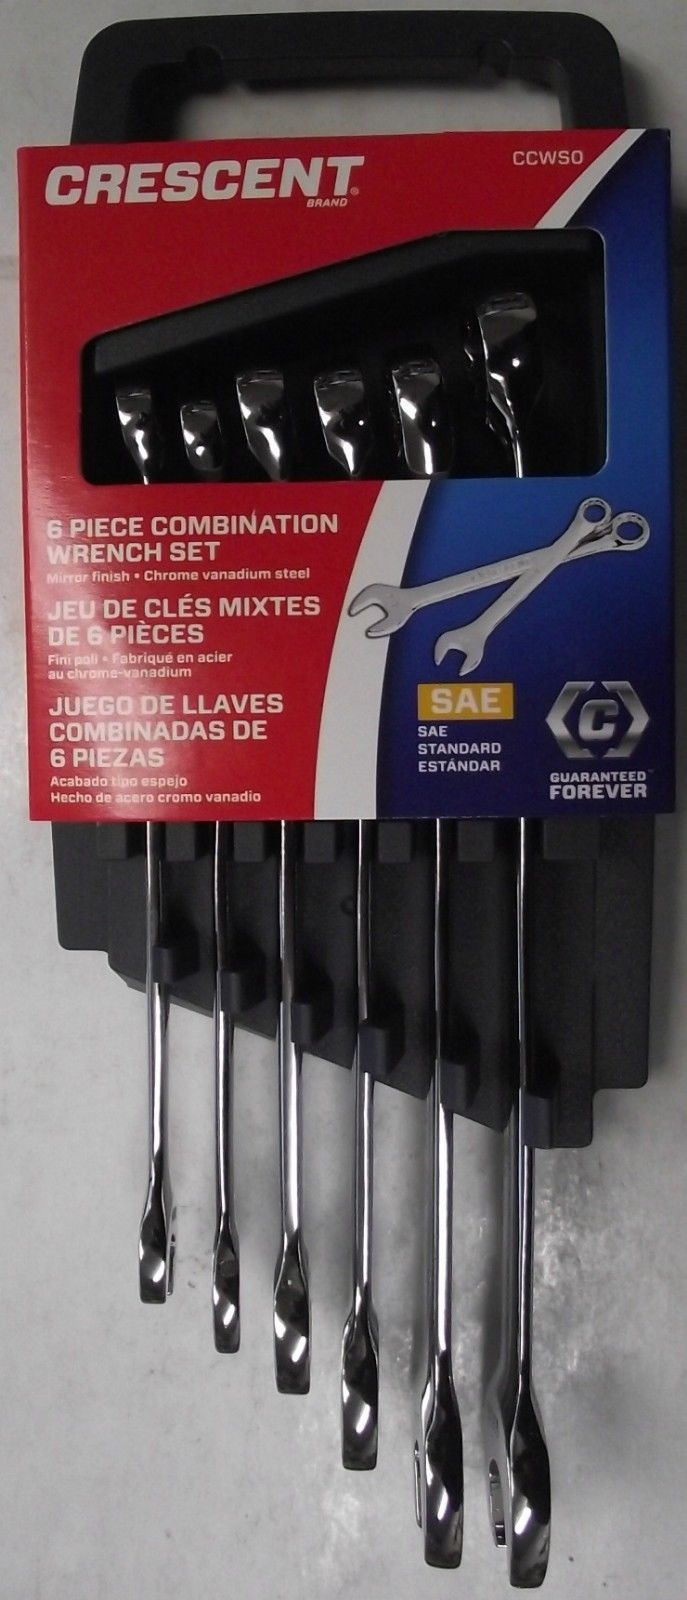 Crescent CCWS0 6pc. SAE Combination Wrench Set 12pt.